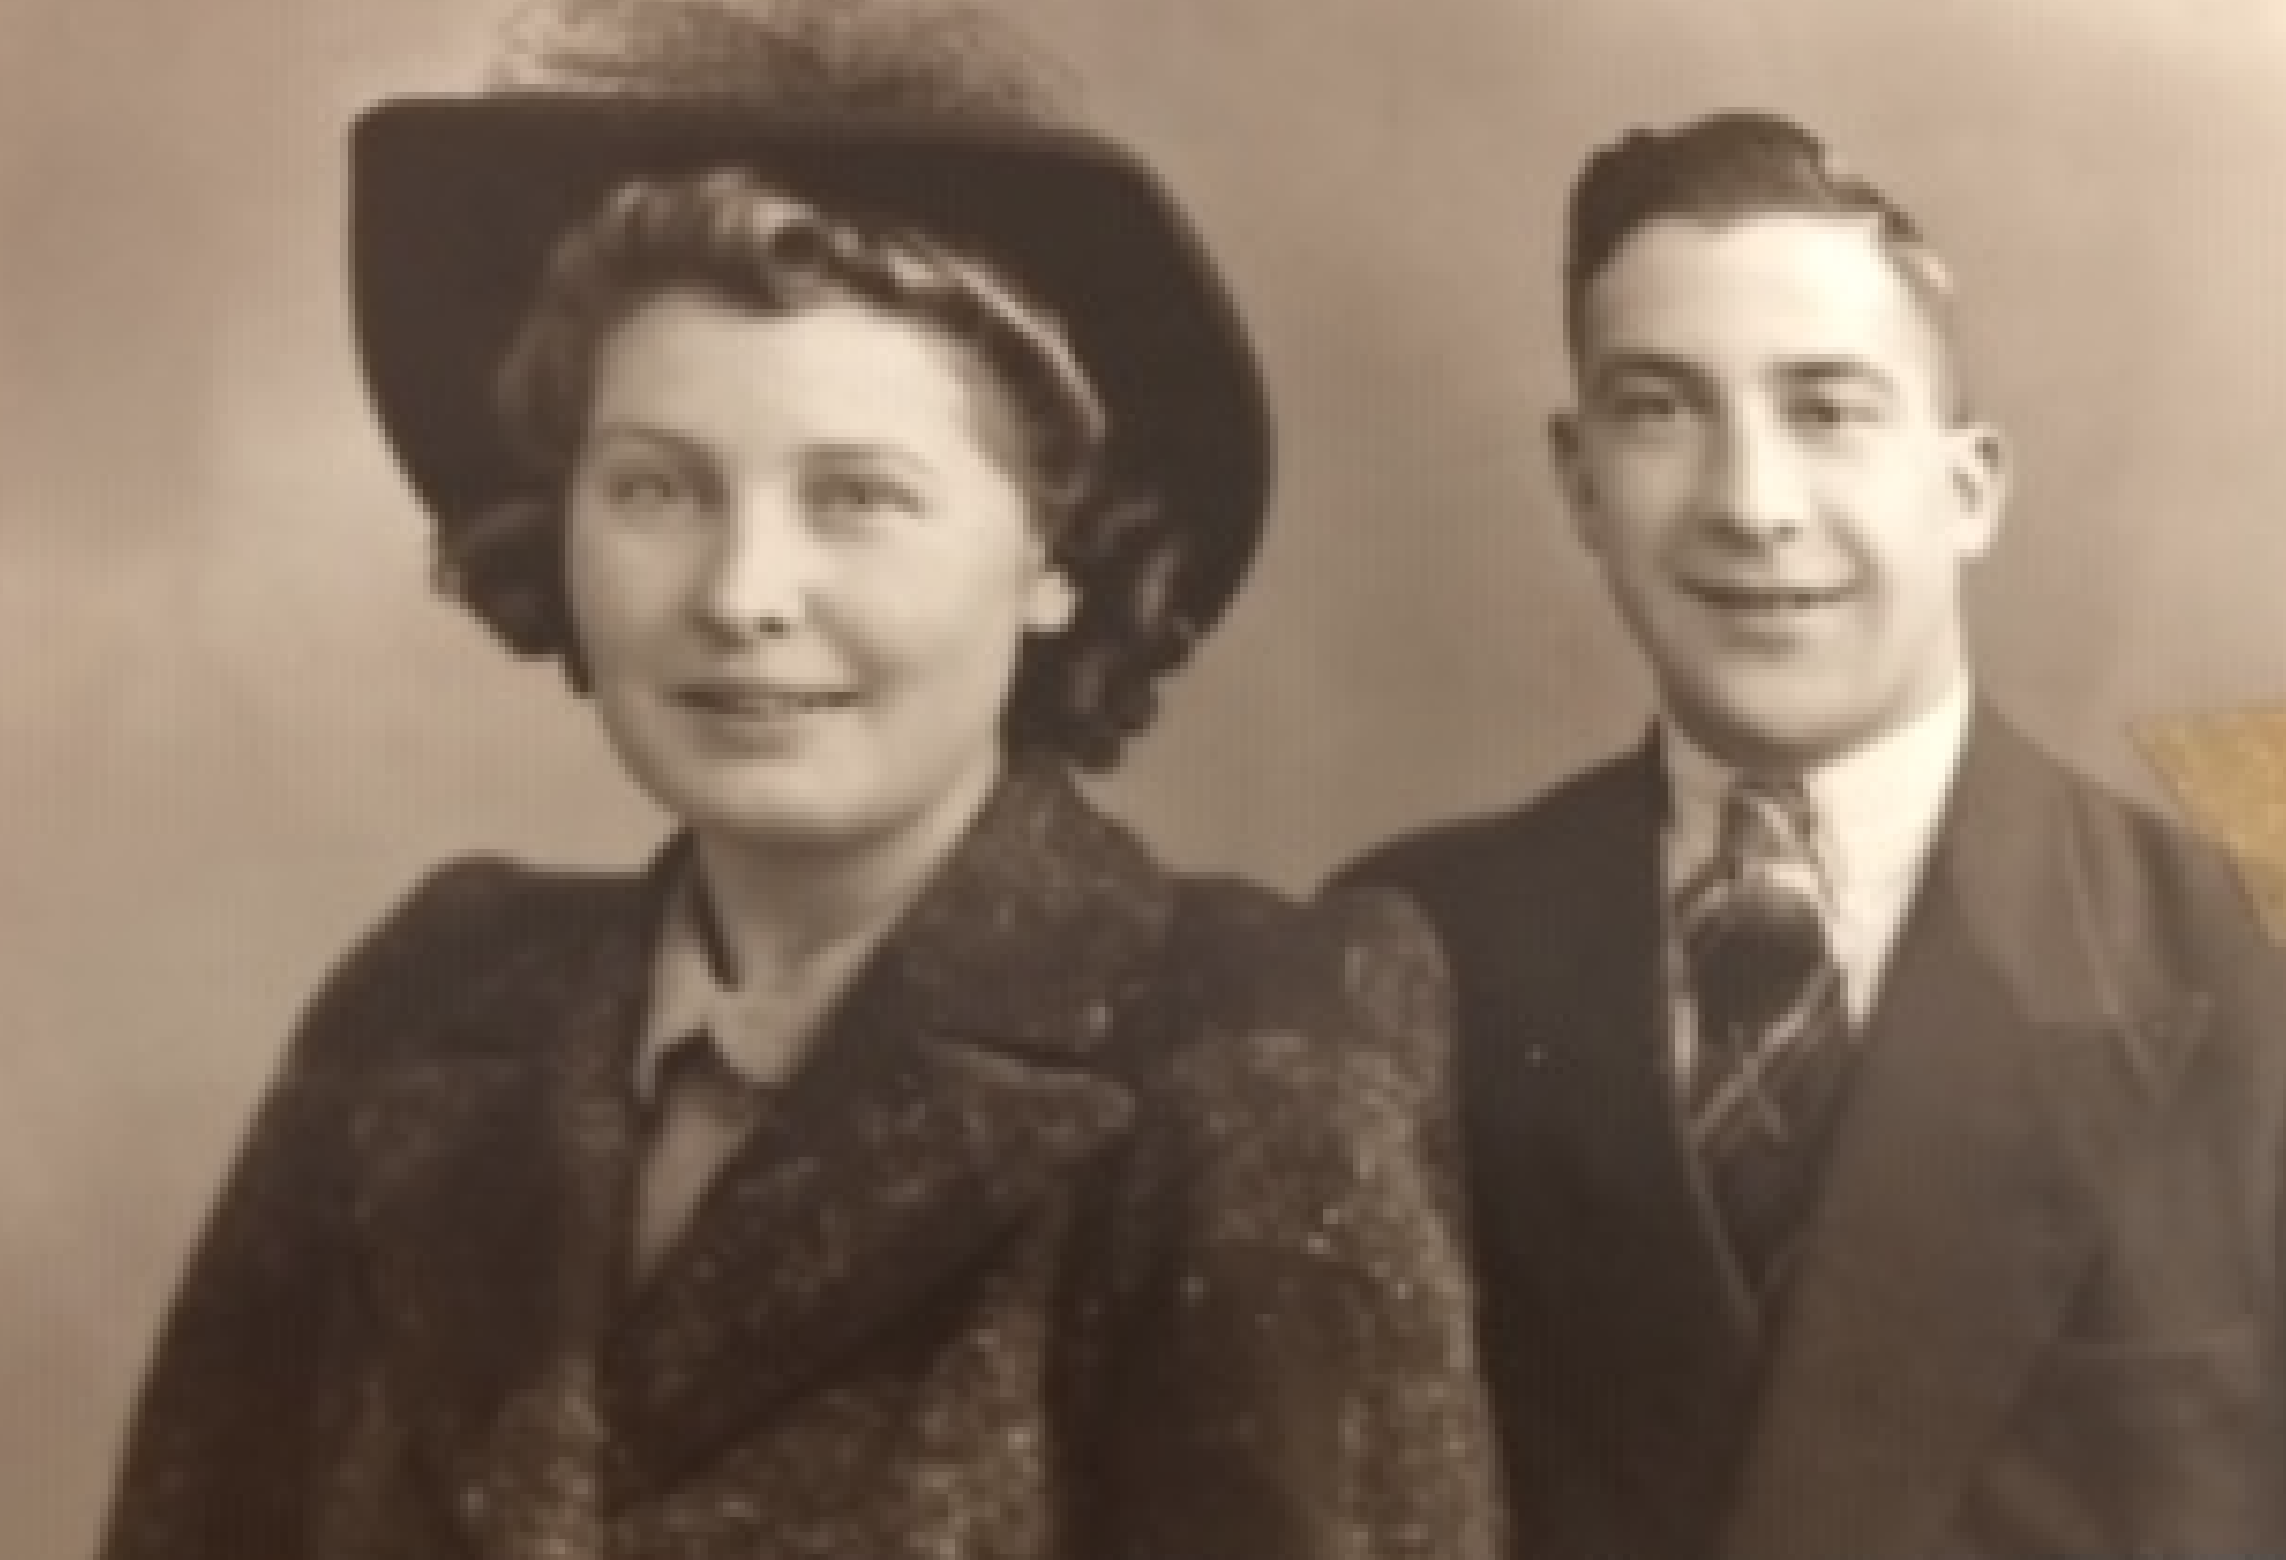 John and his wife Marjorie